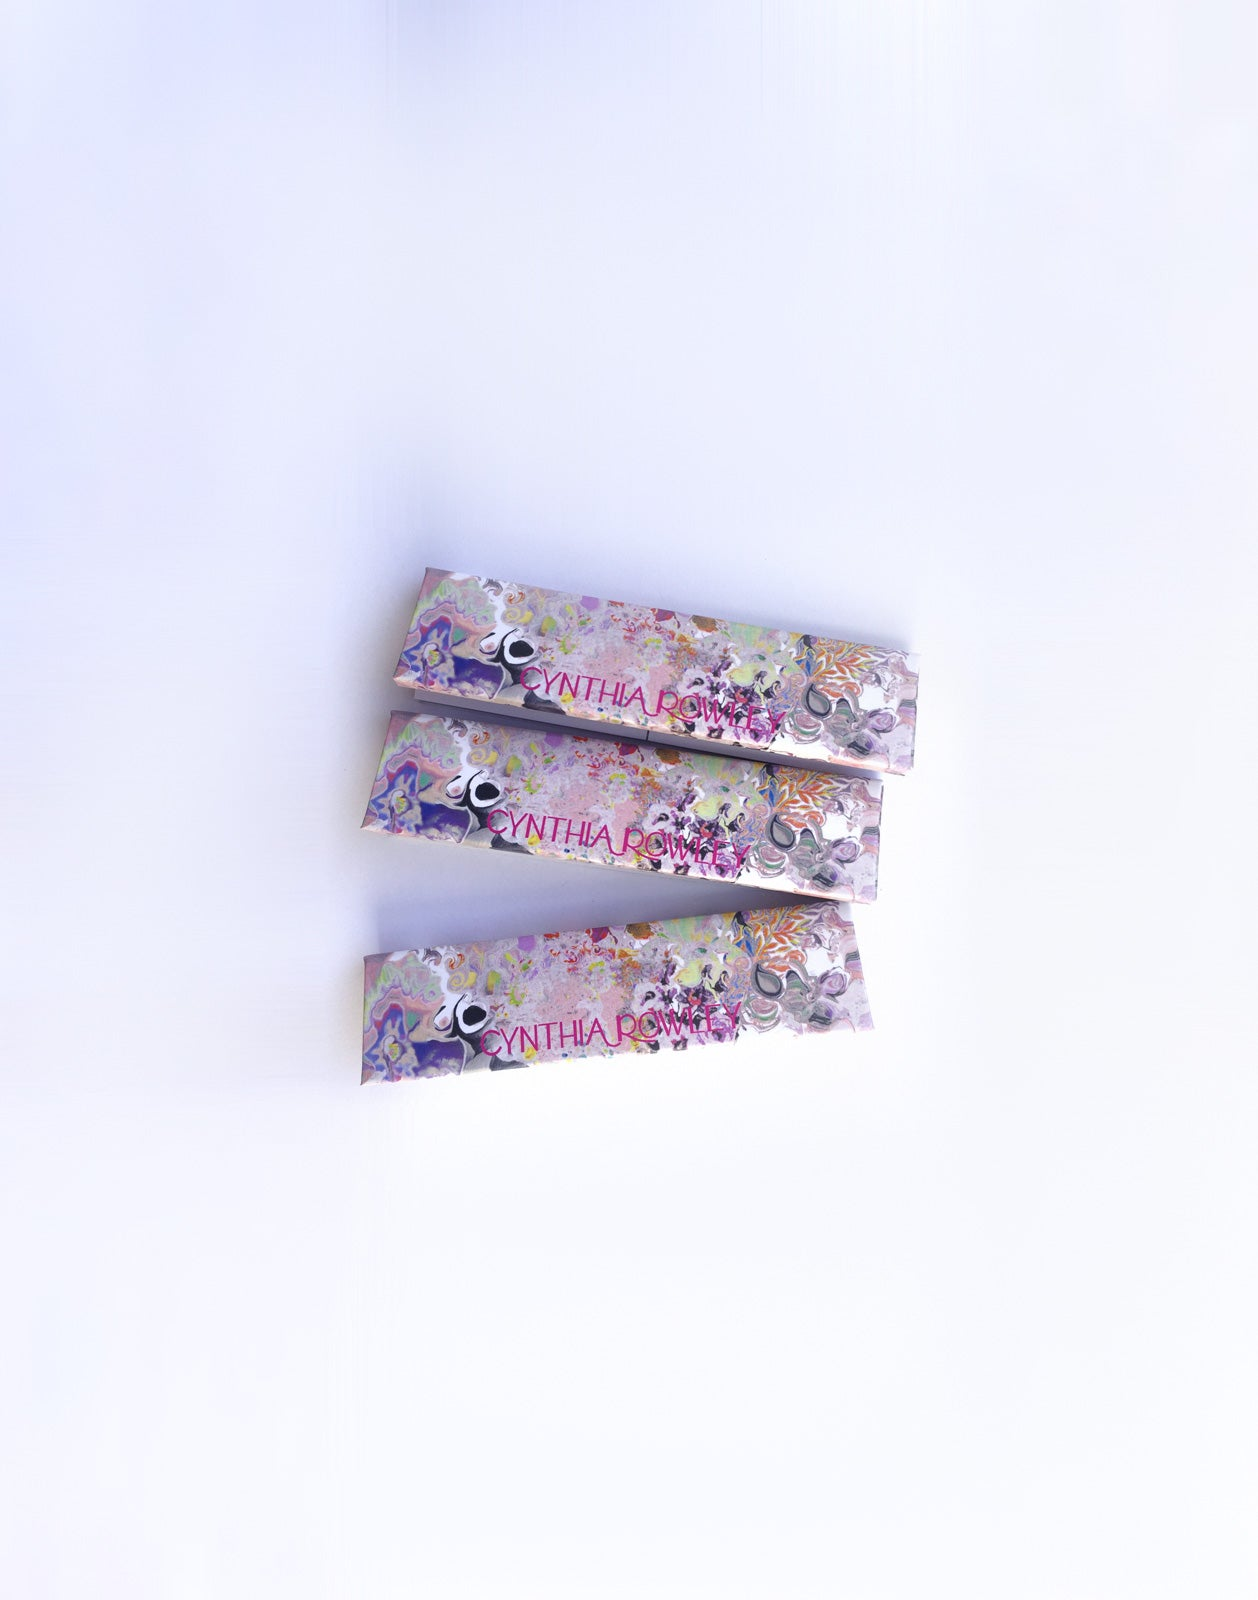 Light Floral print rolling papers set of 3.